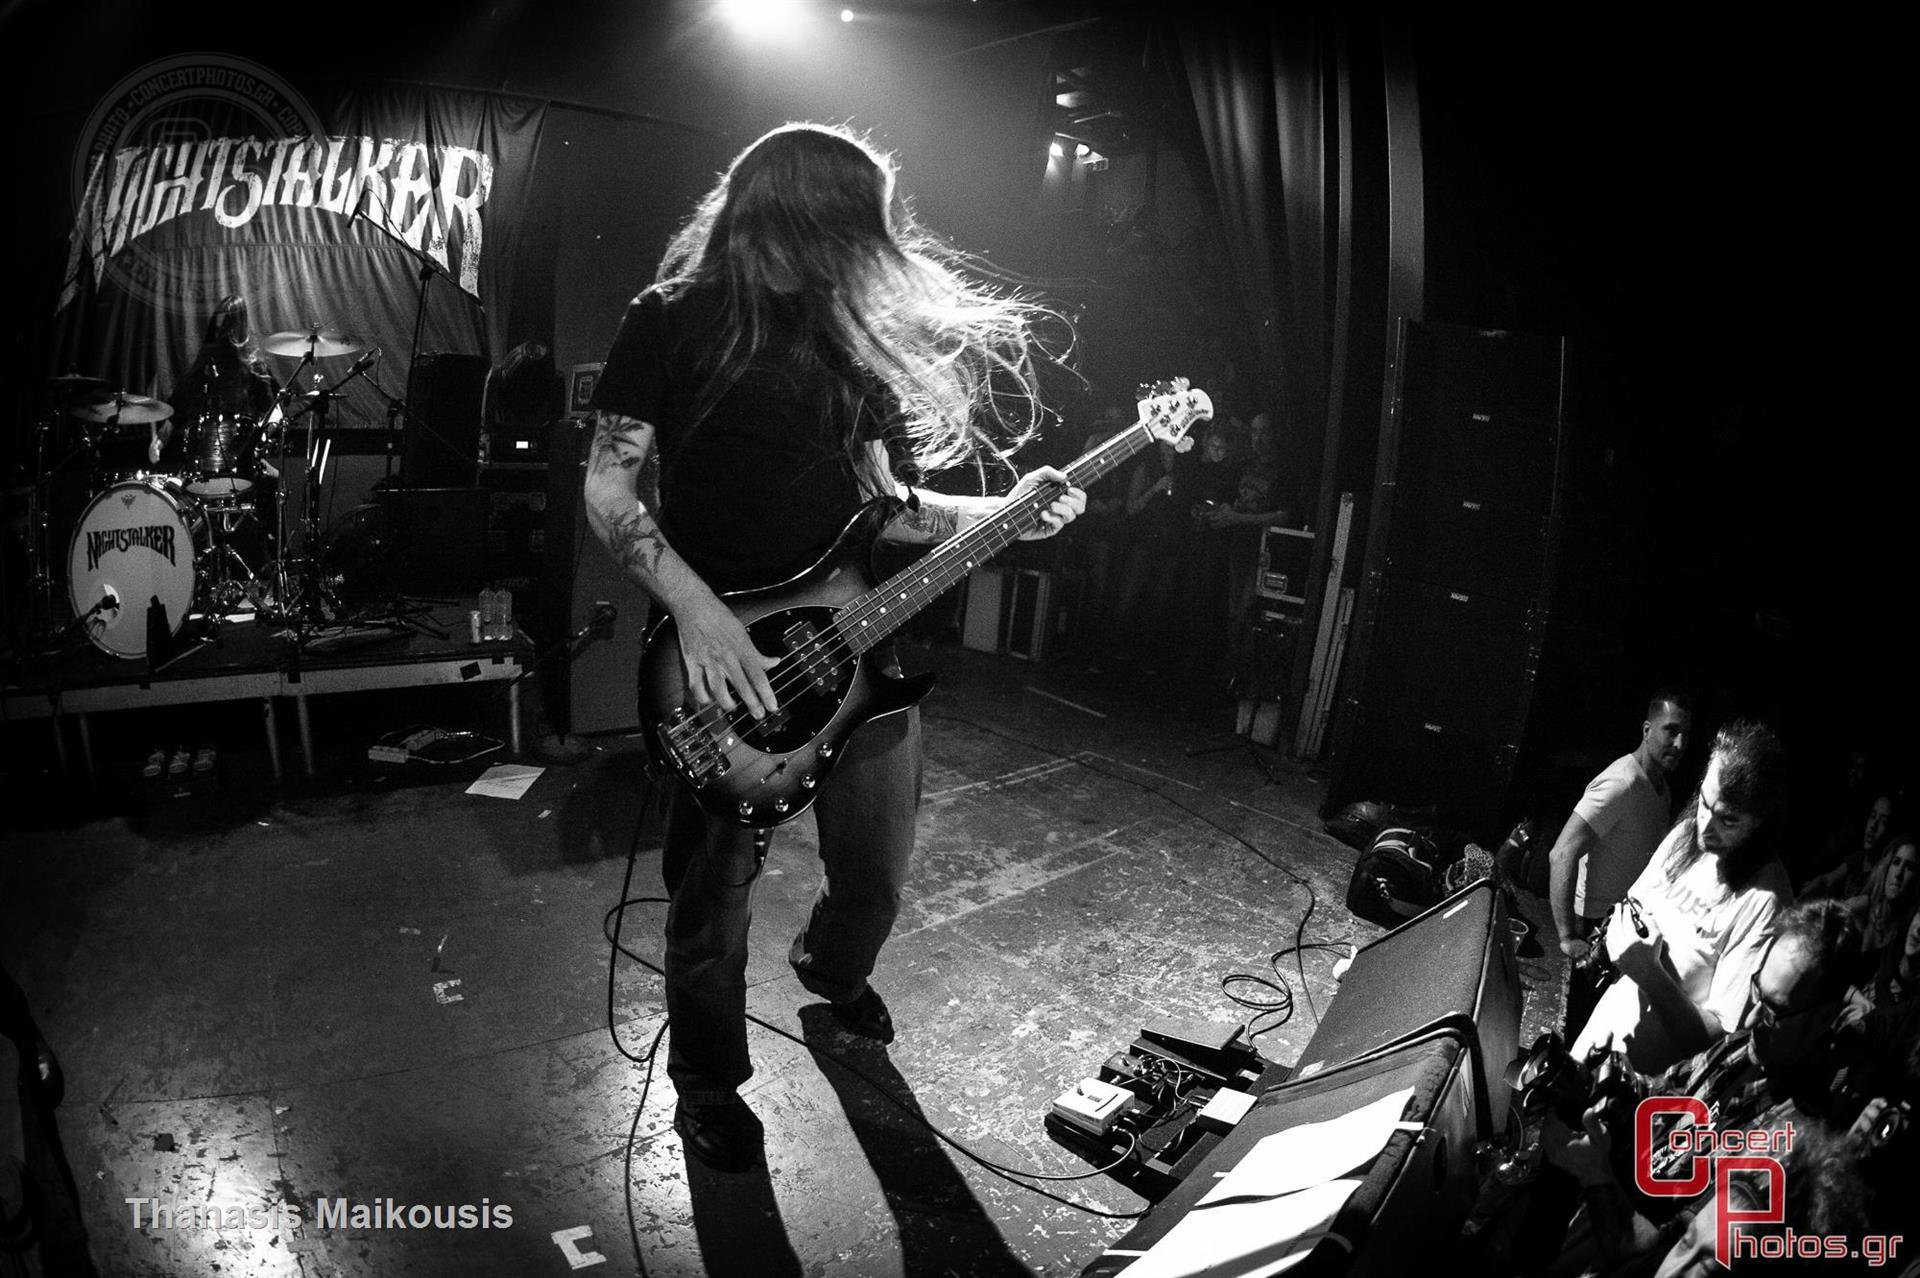 Nightstalker Three Holy Strangers-Nightstalker-Gagarin-April-2015 photographer: Thanasis Maikousis - ConcertPhotos - 20150425_2236_18